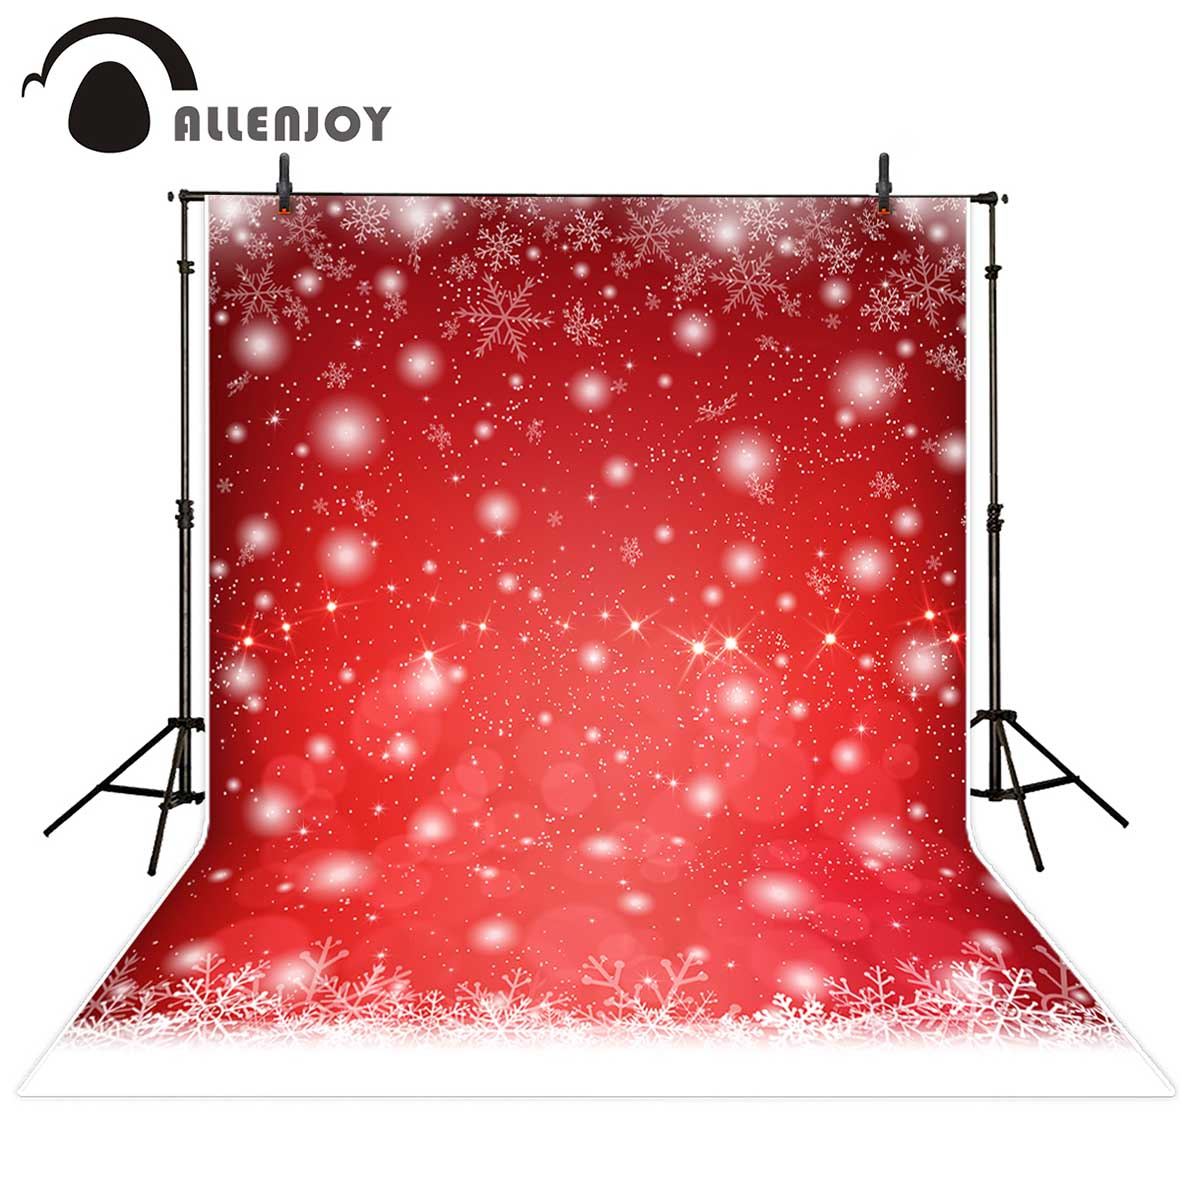 Allenjoy photography backdrop Christmas red bokeh snowflake children background photocall customize original design photobooth